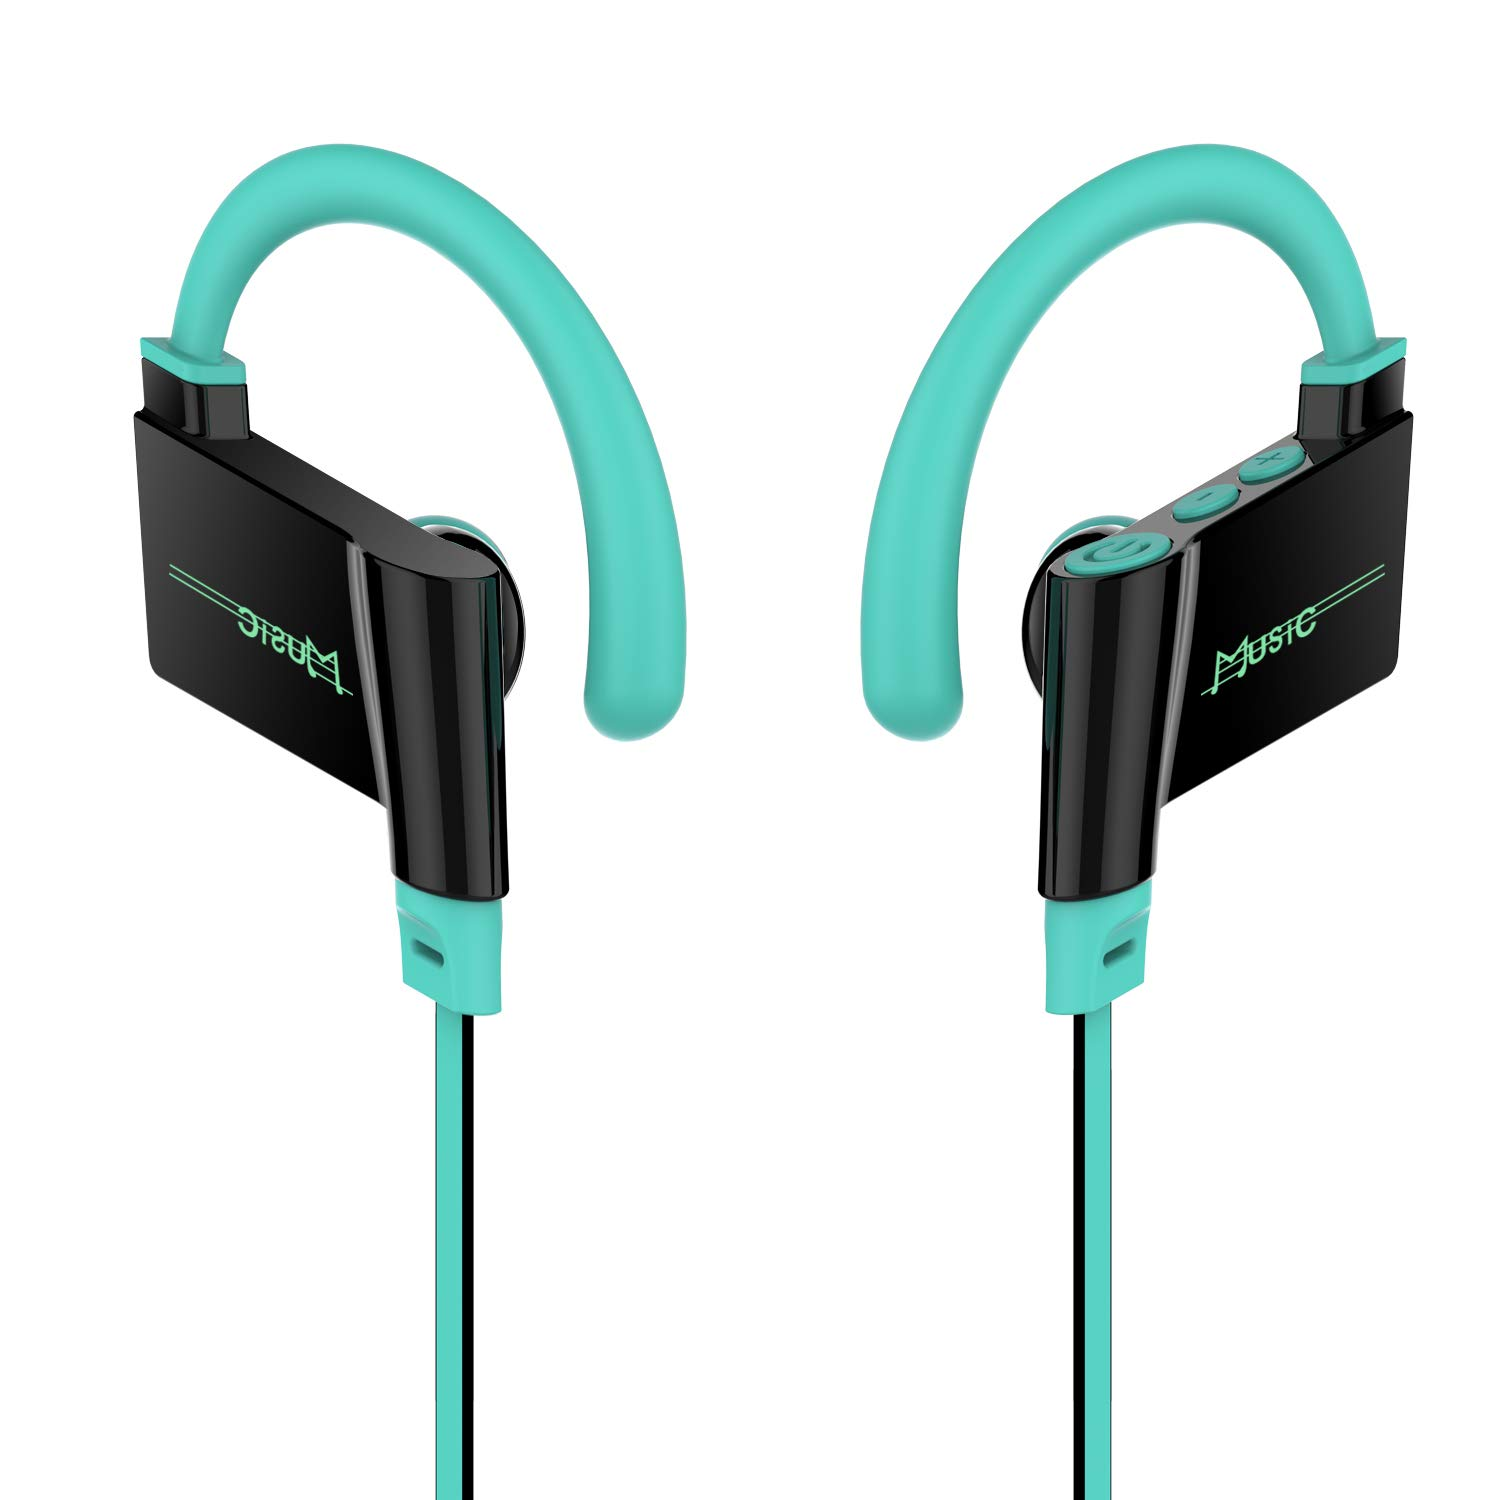 Veniveta Bluetooth Headphones, Sport Wireless Earbuds, IPX6 Sweatproof, 8 Hours Playtime, Noise Cancelling Stereo Hi-Fi Sound, Lightweight Snug Fit, with Mic, Blue